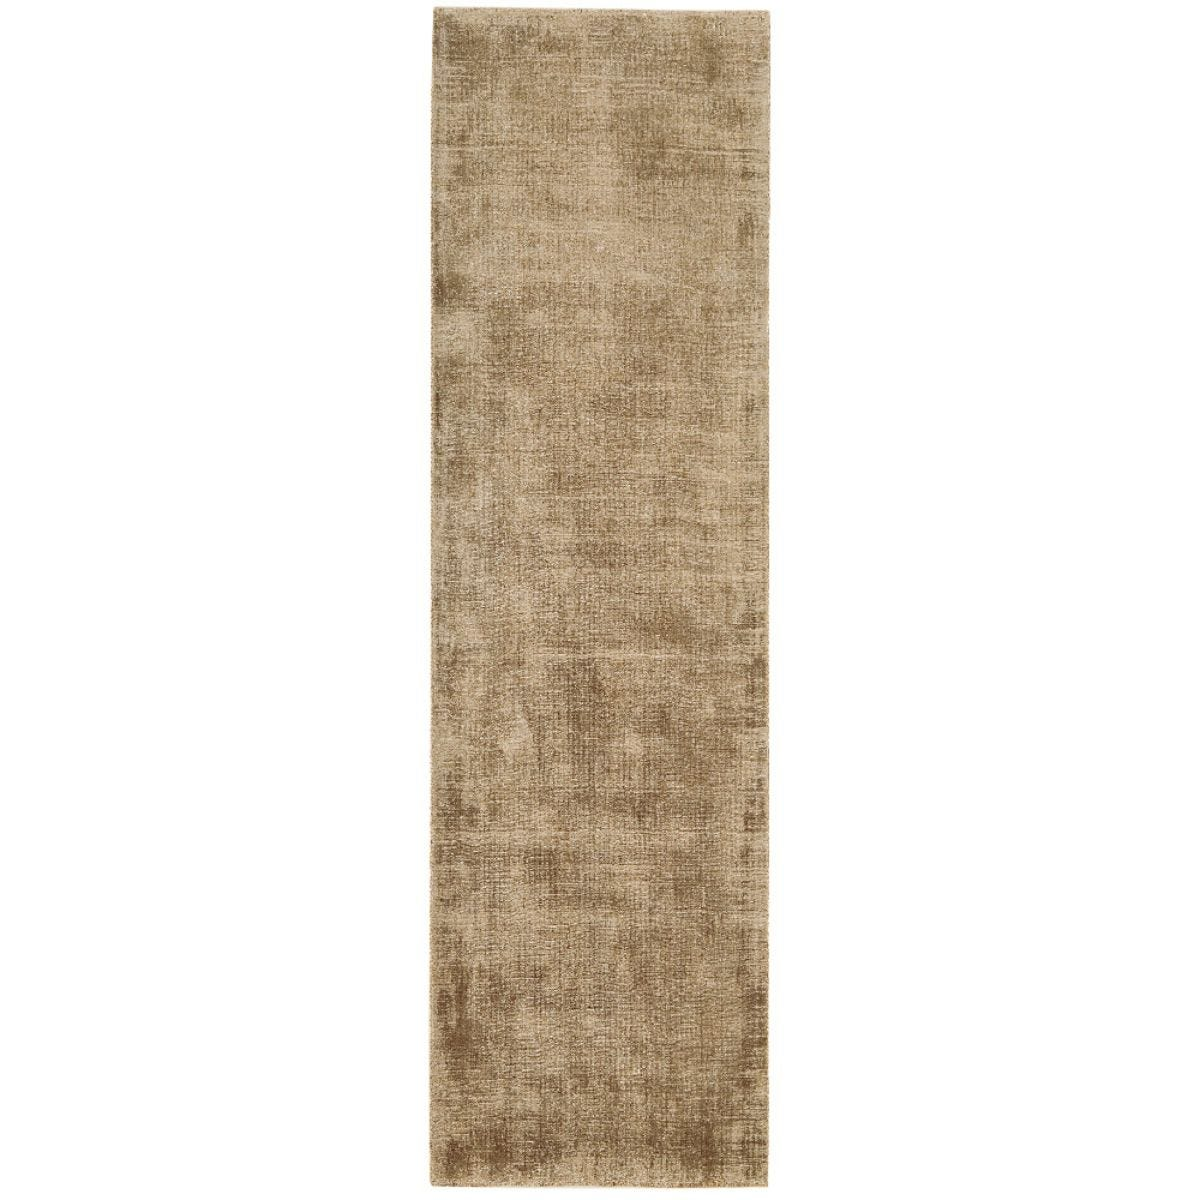 Asiatic Blade Runner Floor Rug, 66 x 240cm - Soft Gold